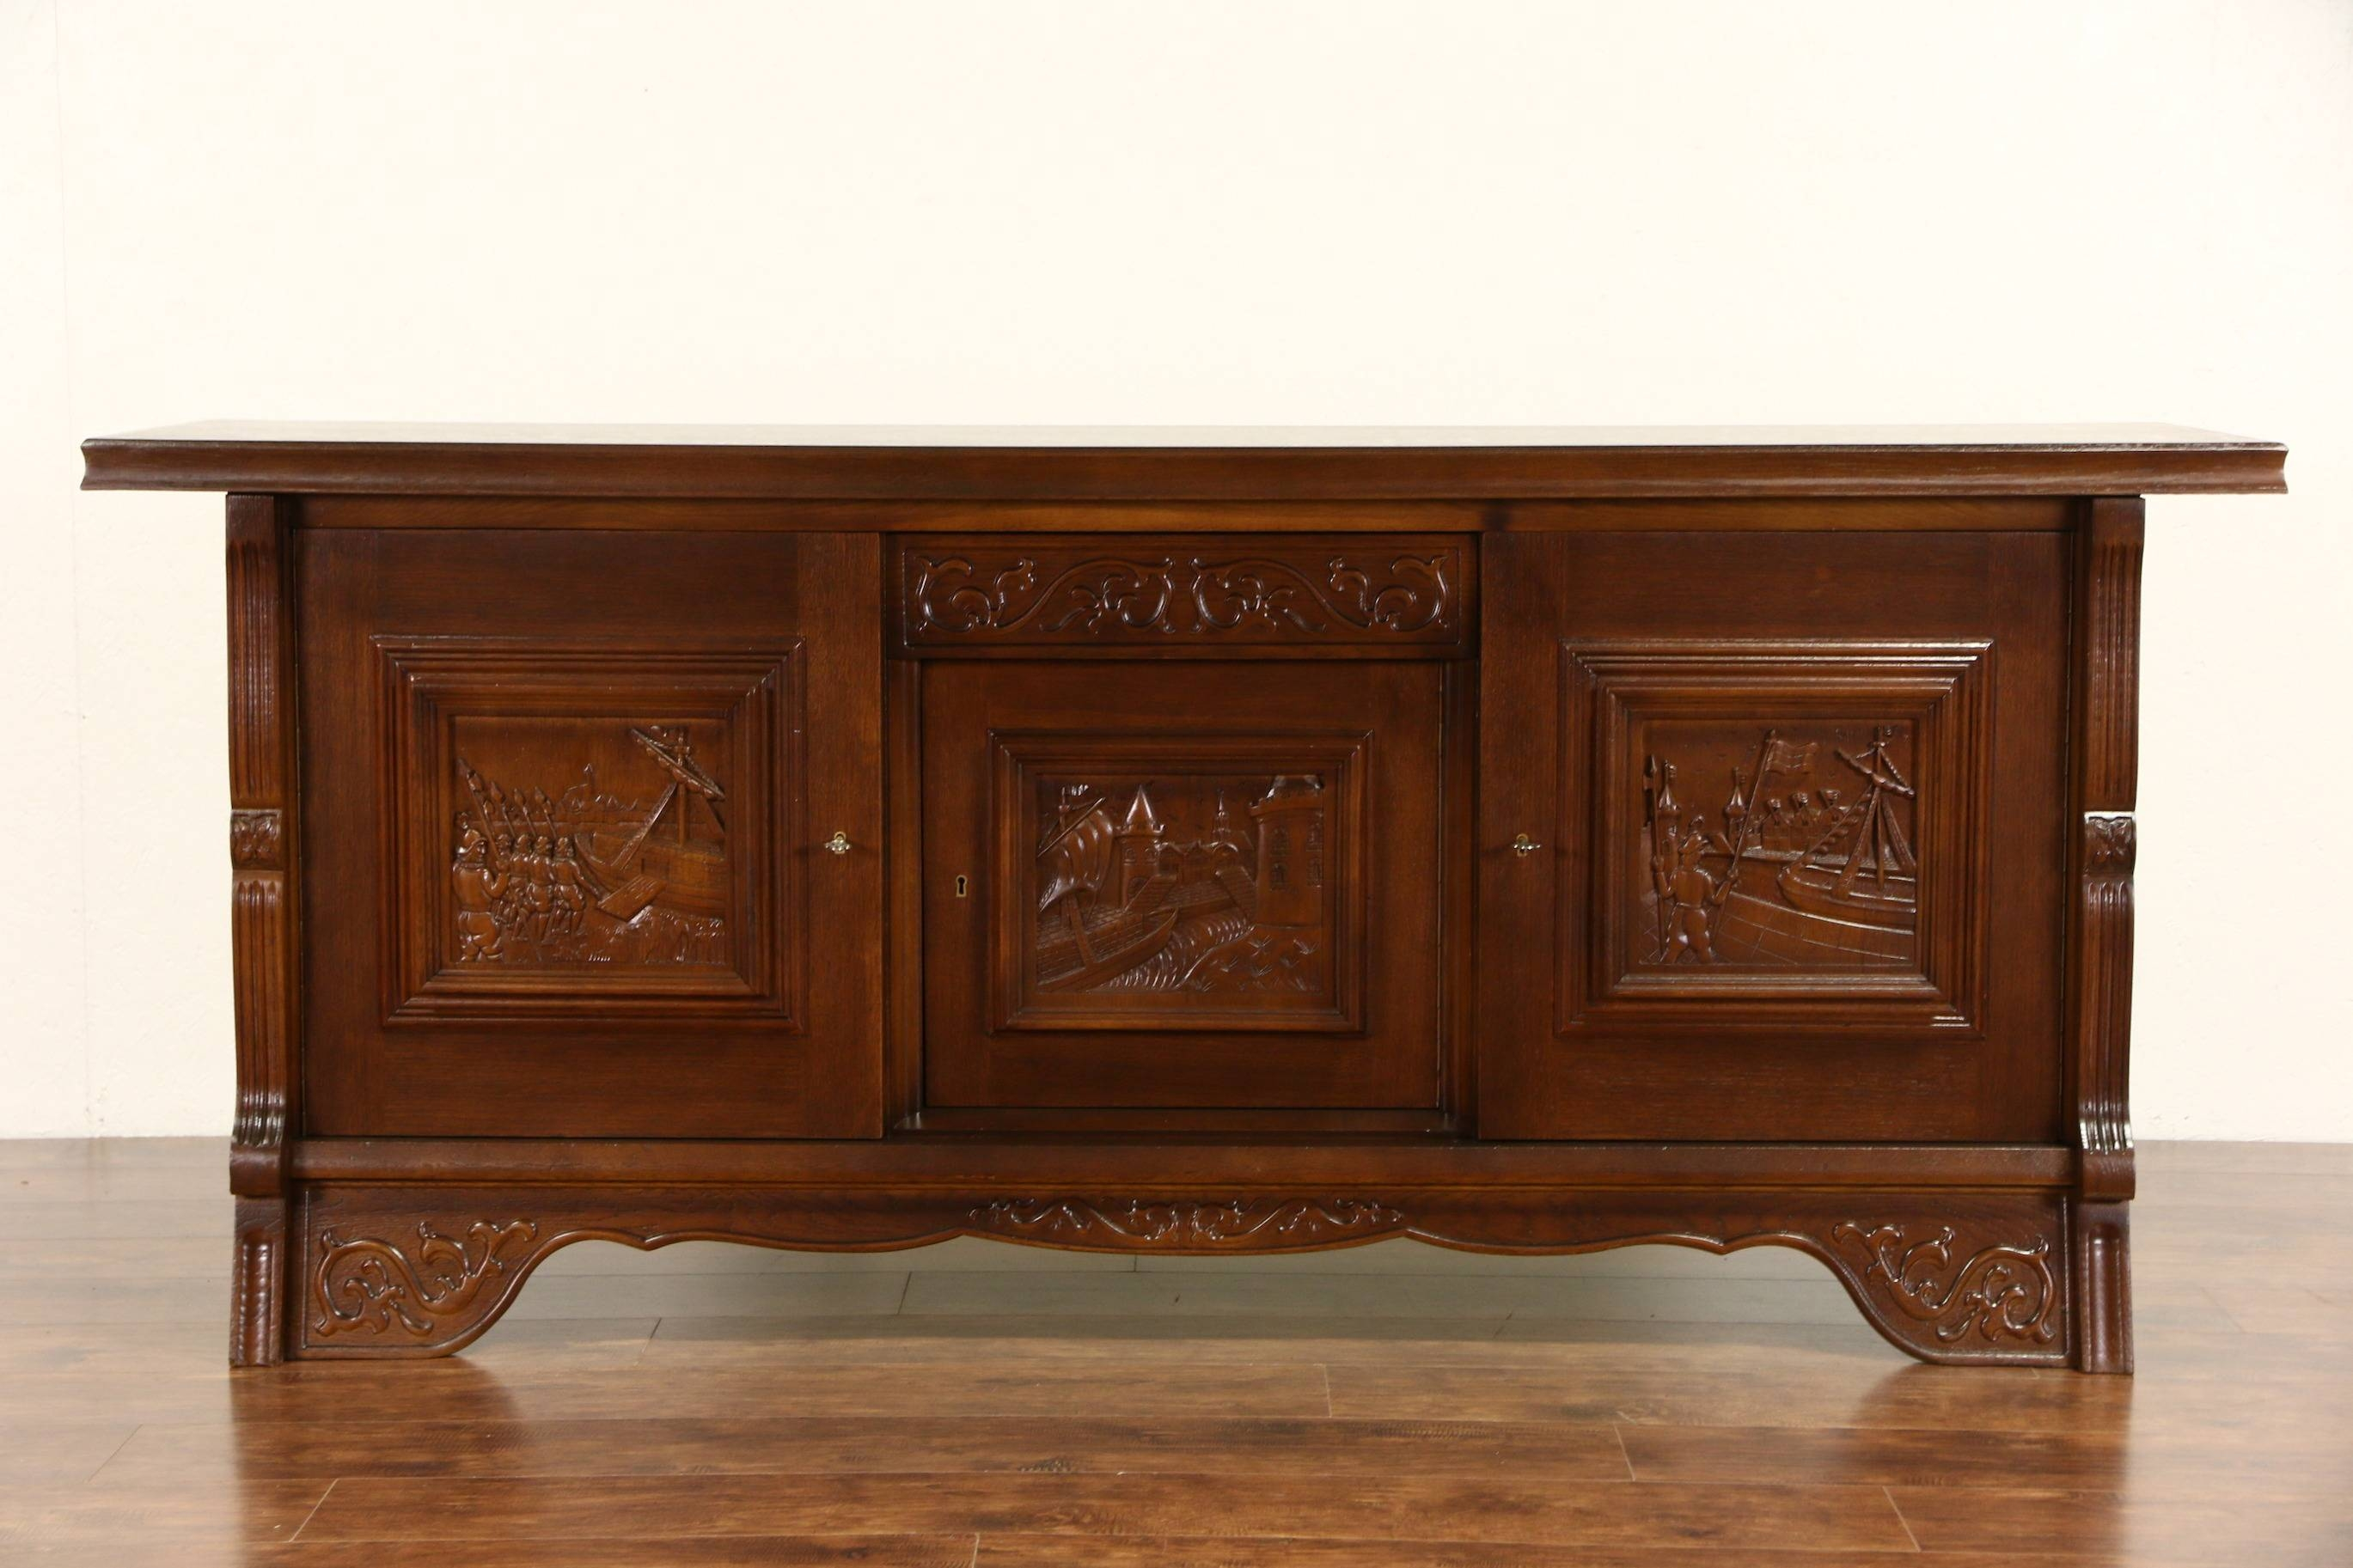 New Credenzas And Sideboards – Bjdgjy Pertaining To Most Popular Credenzas And Sideboards (View 12 of 15)